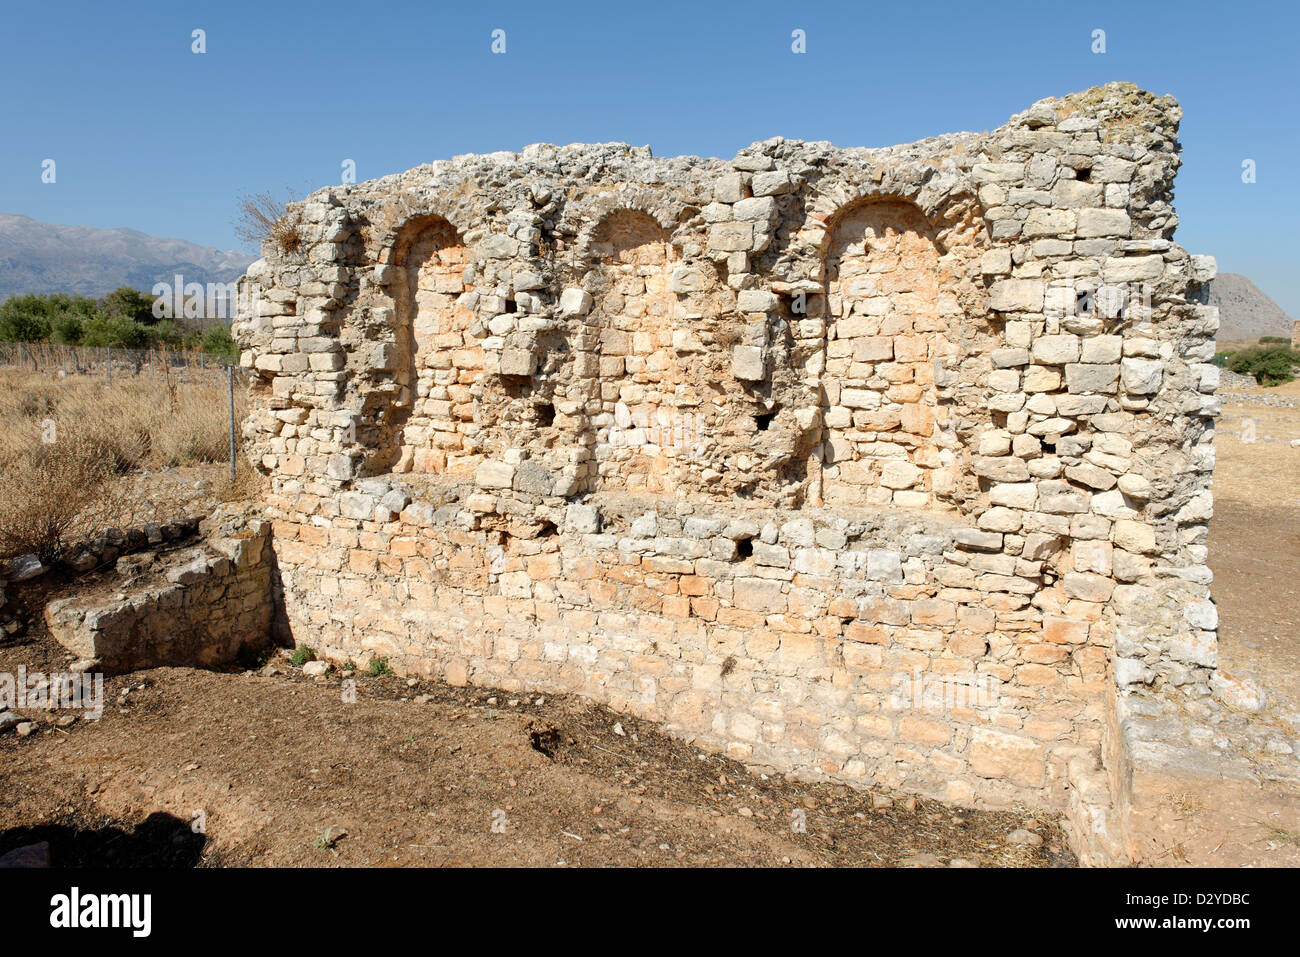 Aptera. Crete. Greece. Roman public building with niches dating from the Roman period 1st century BC- 4th century - Stock Image